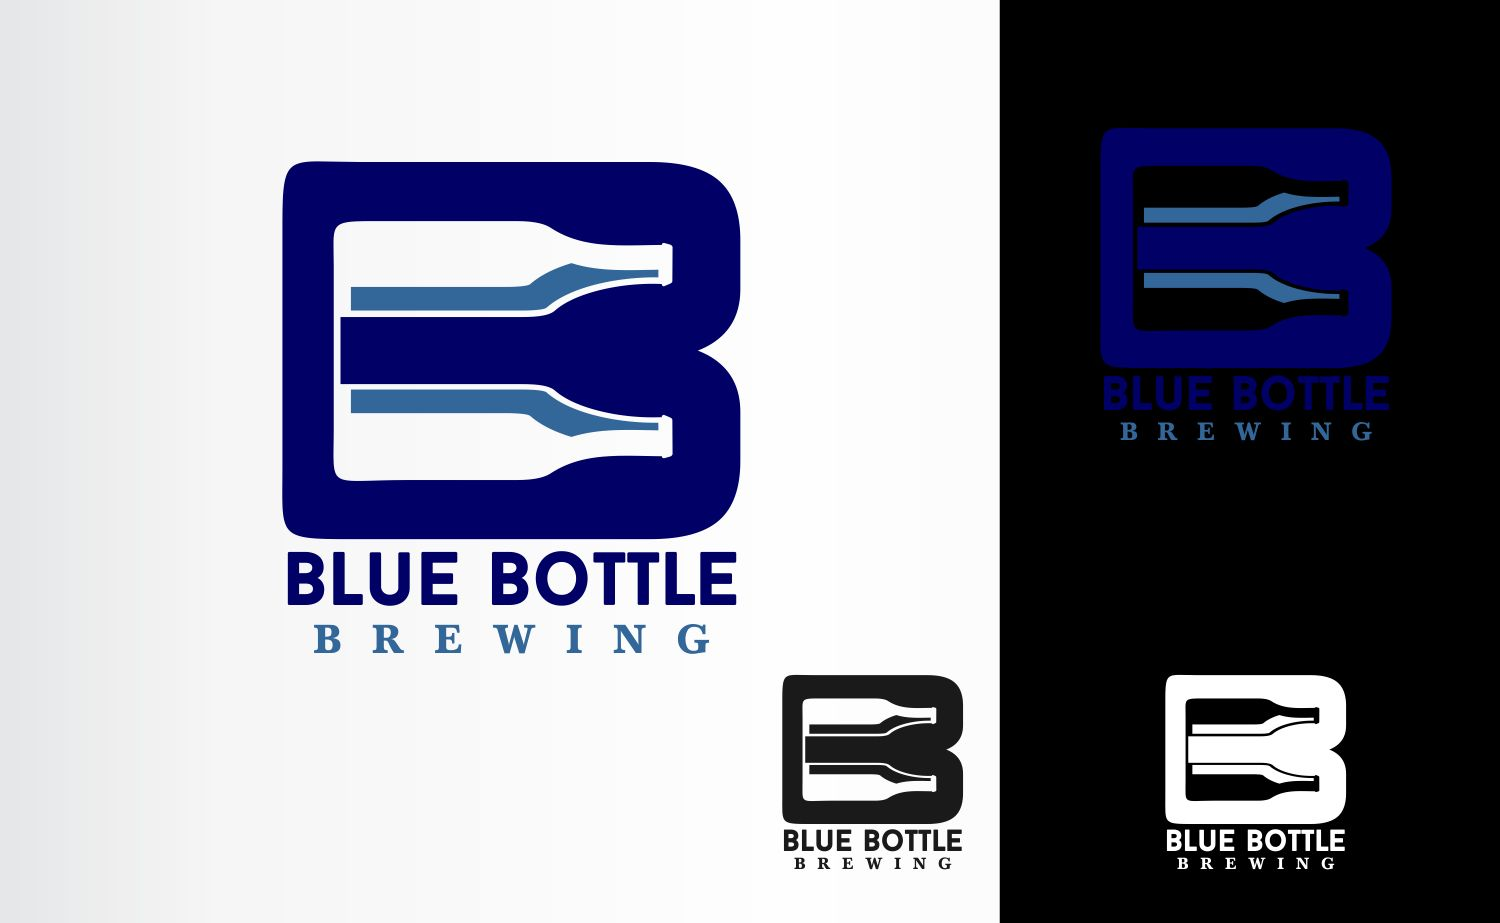 Playful, Bold, Craft Brewery Logo Design for BLUE BOTTLE BREWING by